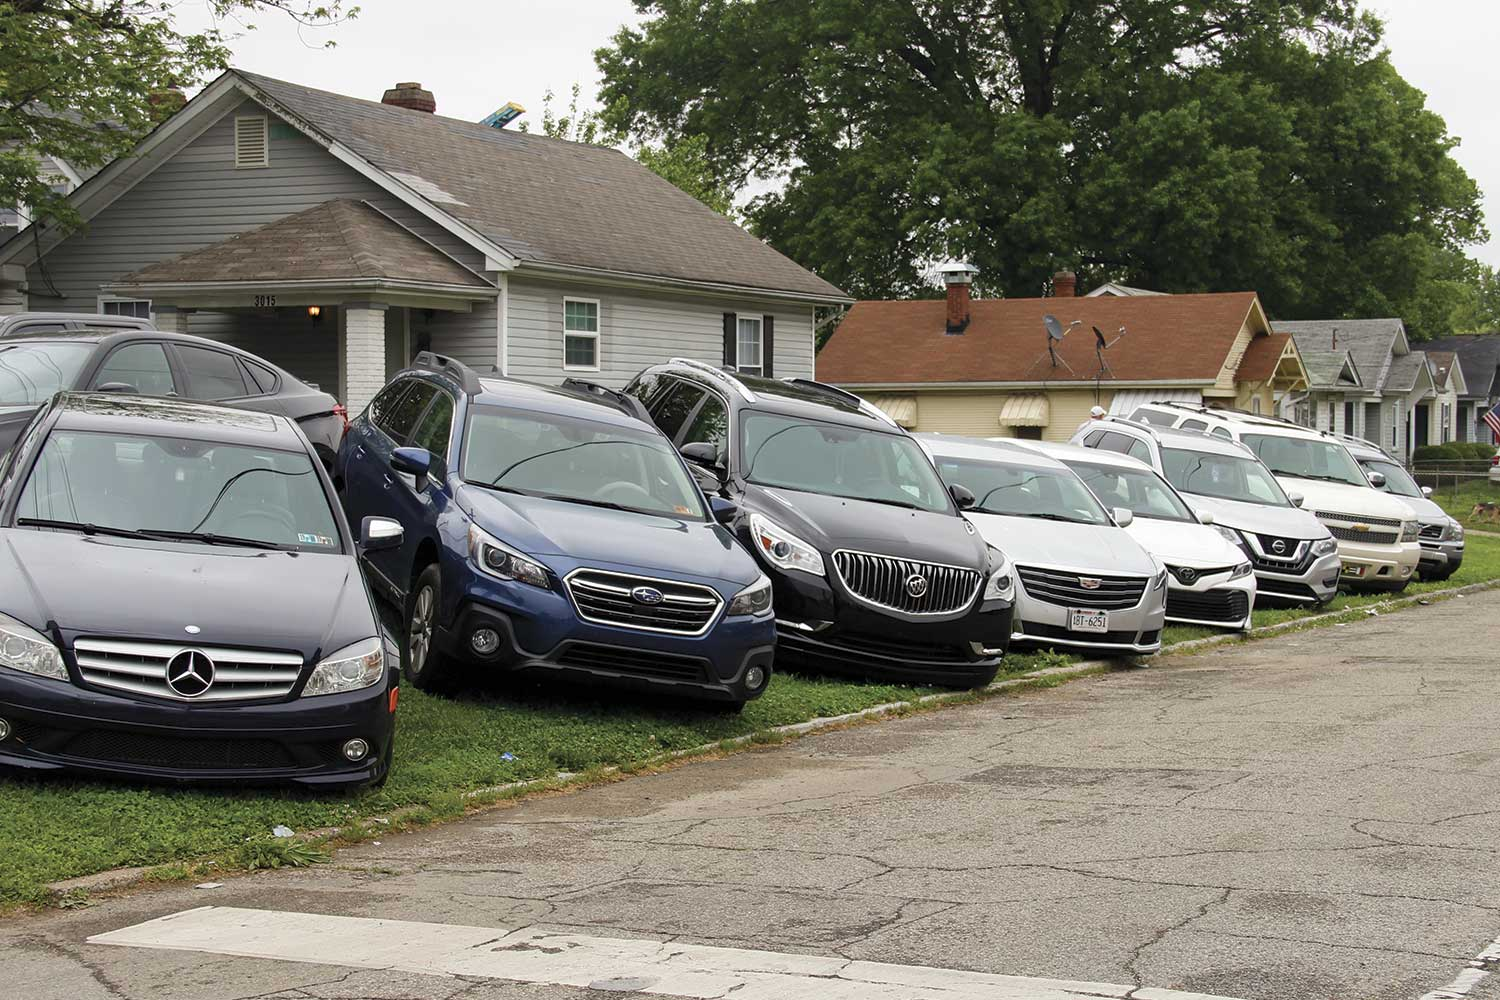 Parking at the Kentucky Derby is hard to come by. Residential areas near Churchill Downs are routinely turned into paid parking lots for those attending the Derby. (Photo by Michael A. Moore)